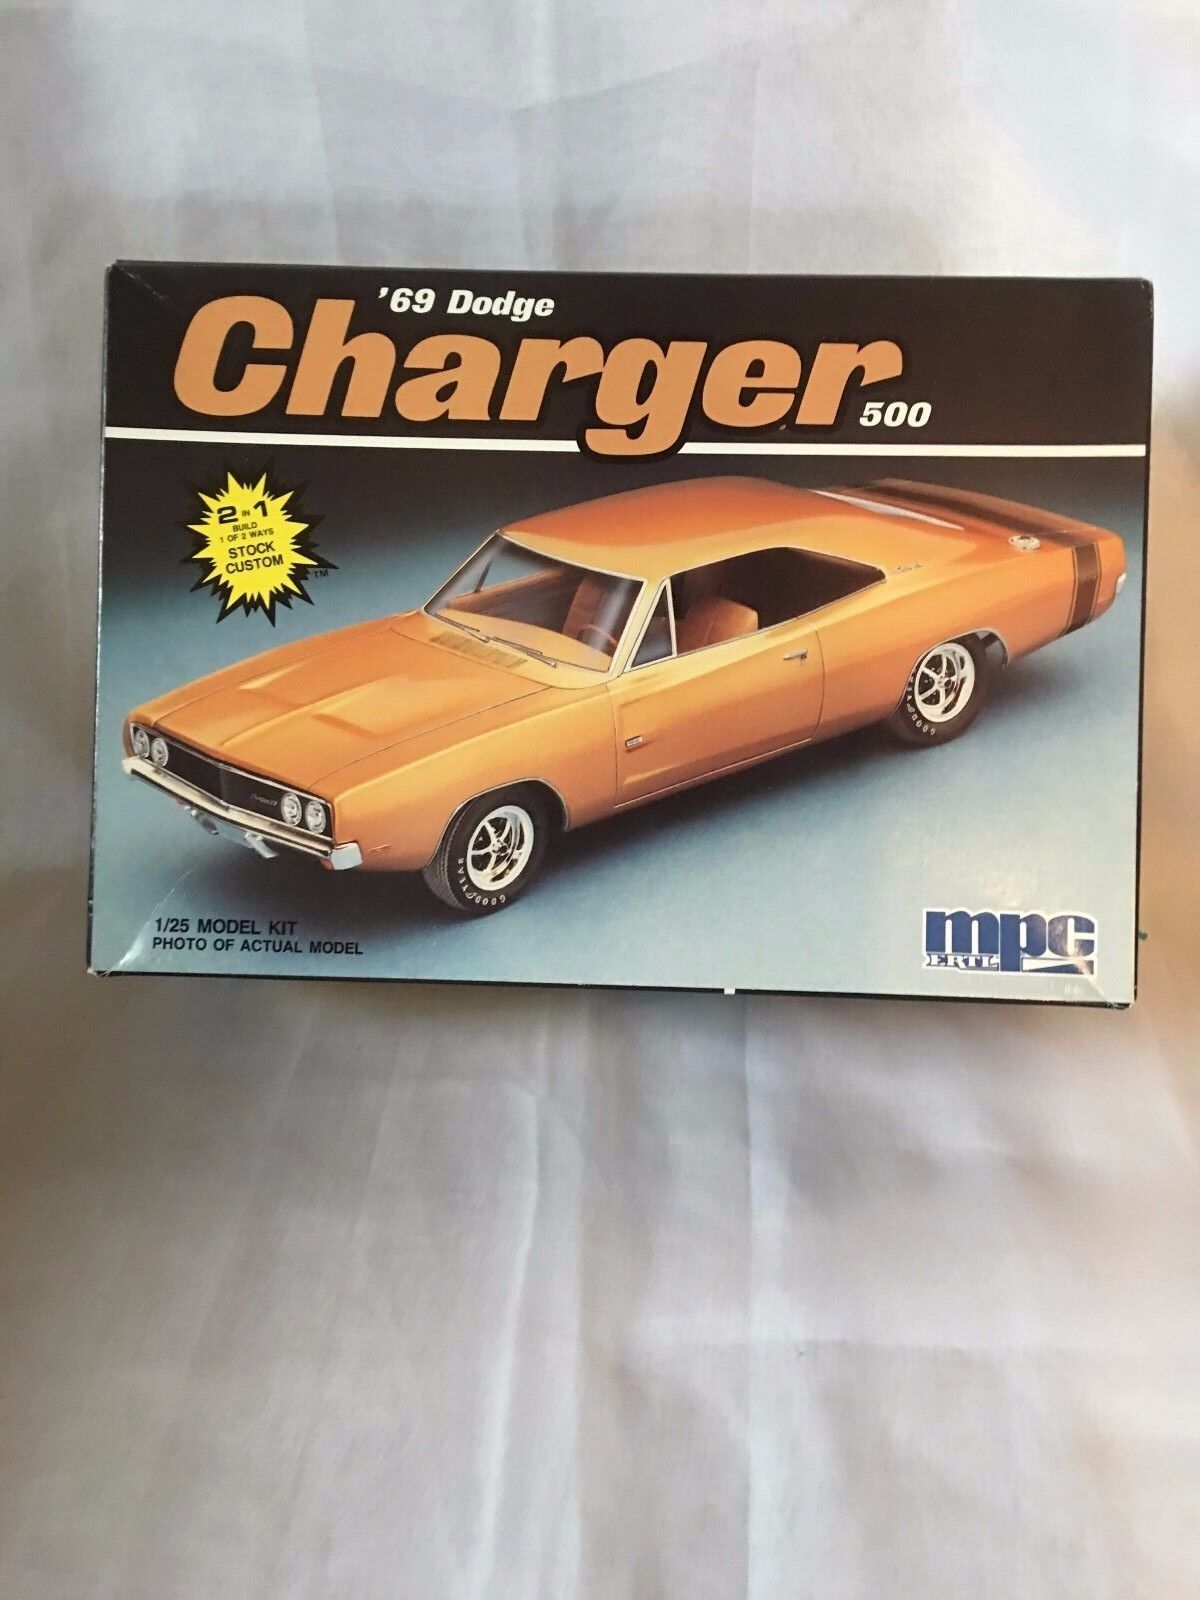 CHARGER '' 69'' DODGE RARE '' USE'' THIS IS  A  CLASSIC CAR OWN PART OF HISTORY